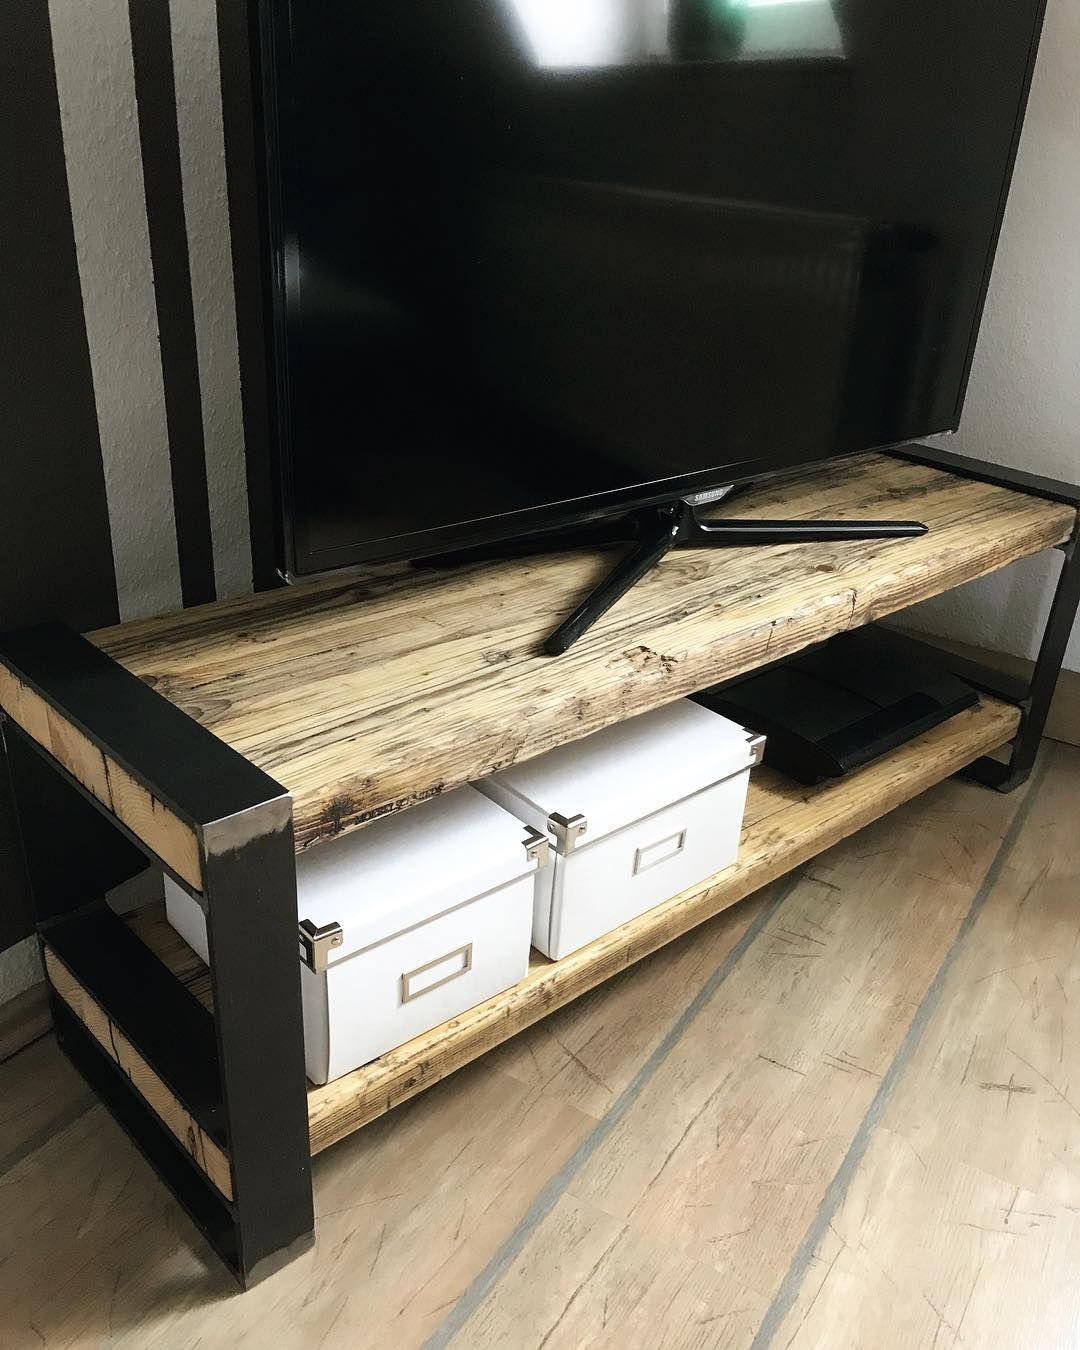 Tv Board Industrial Tv Board - Industrial Design/altholz Fichte #industrialdesign #industrial #altholz #upcycling #upcyclingfurniture #handmade #man… | Home Decor, Storage Bench, Home